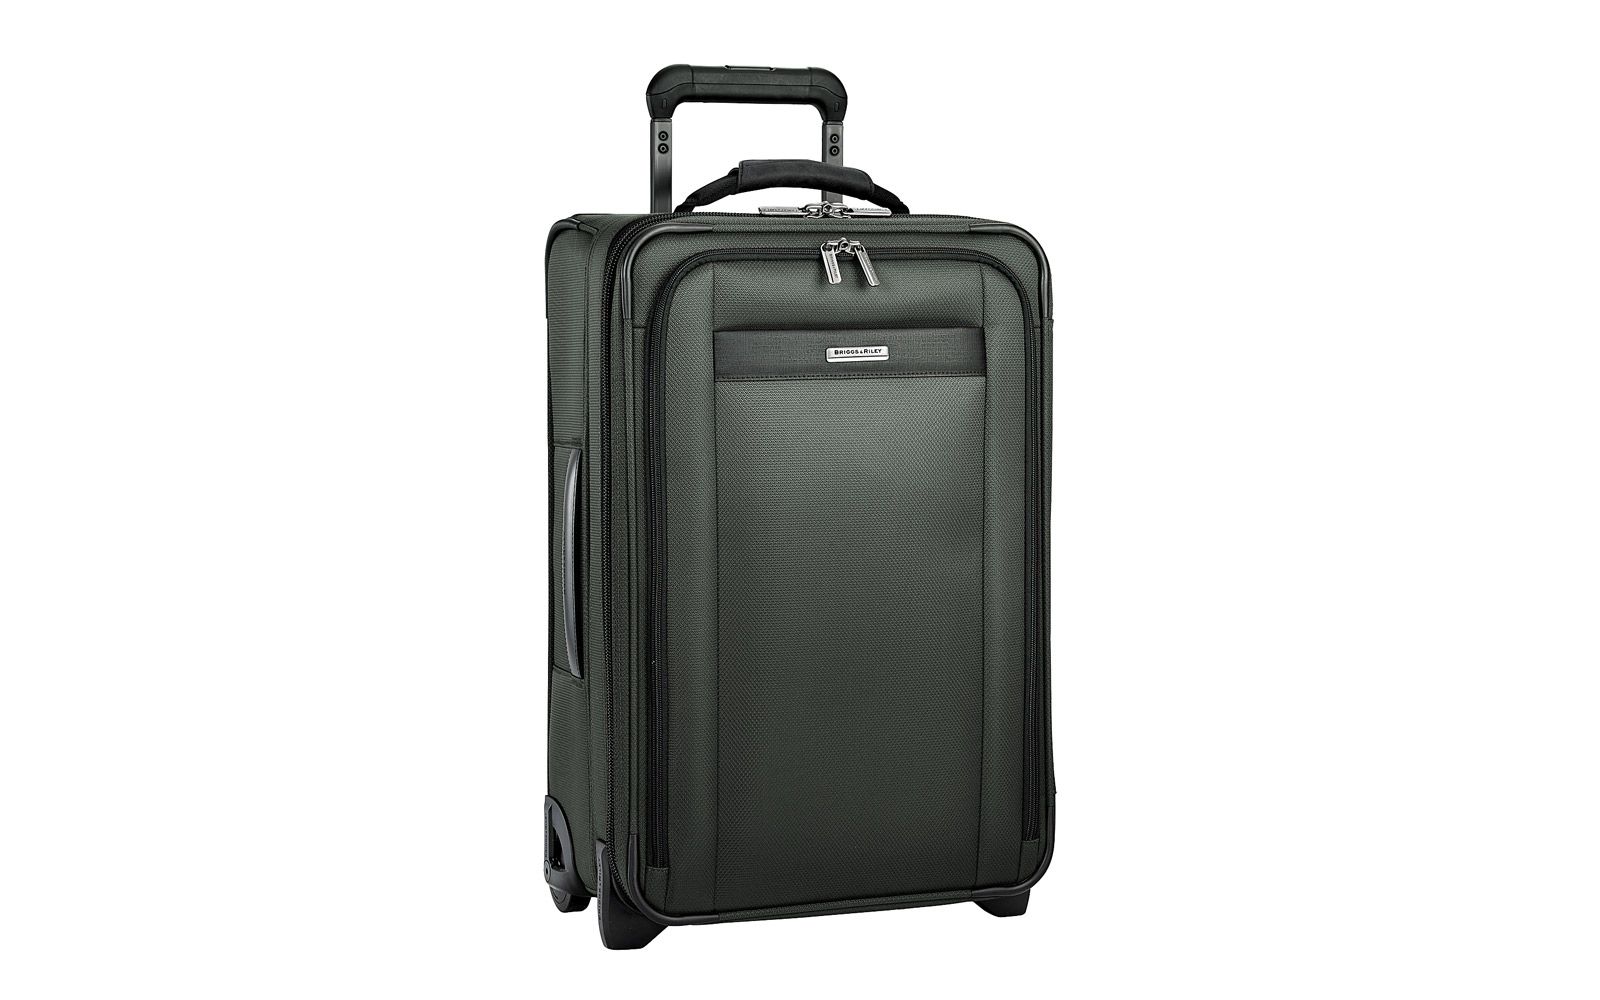 Delta Carry On Luggage Size